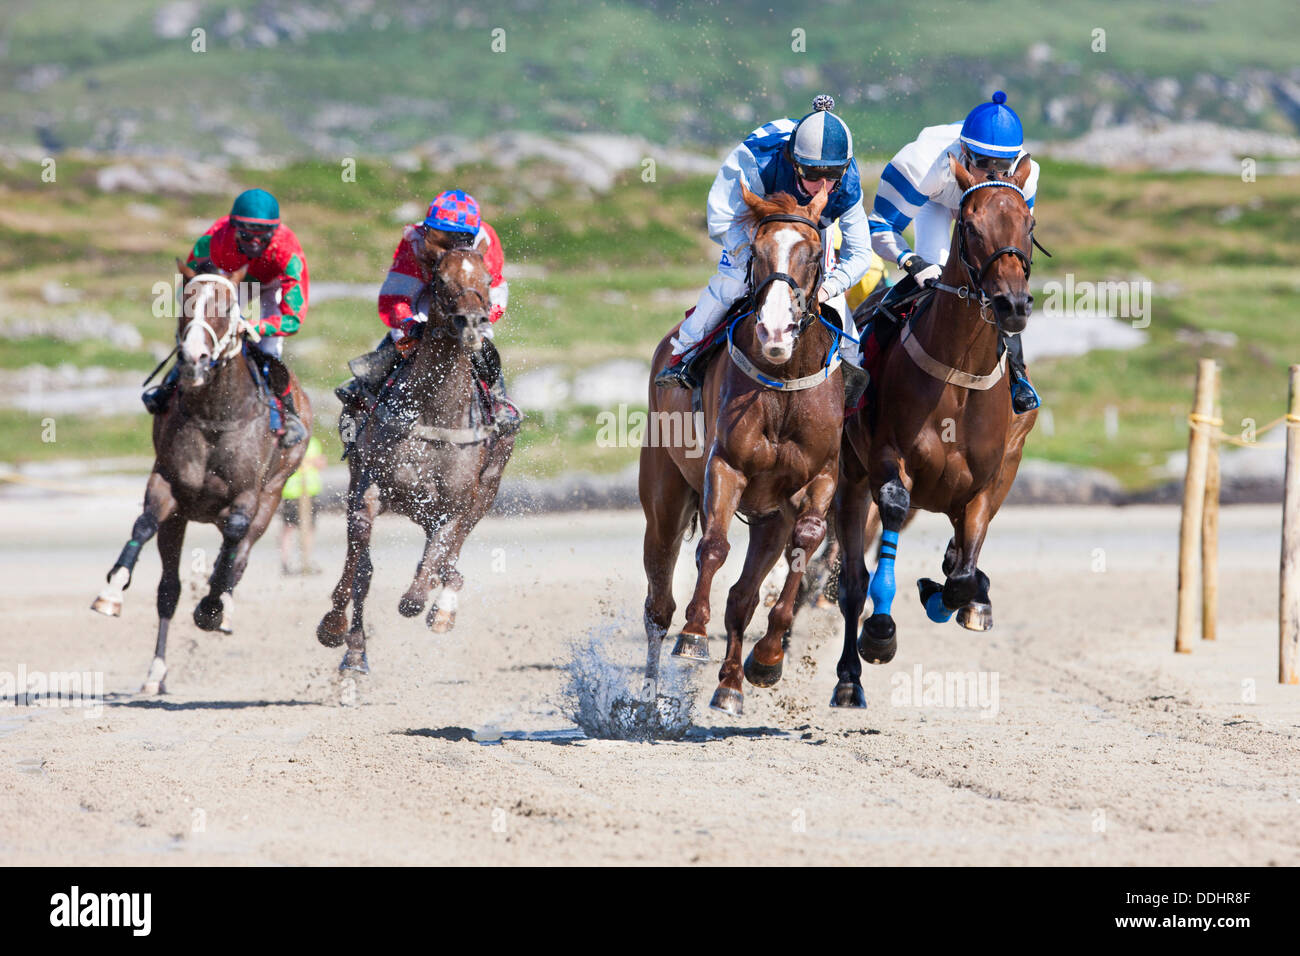 Courses hippiques Photo Stock